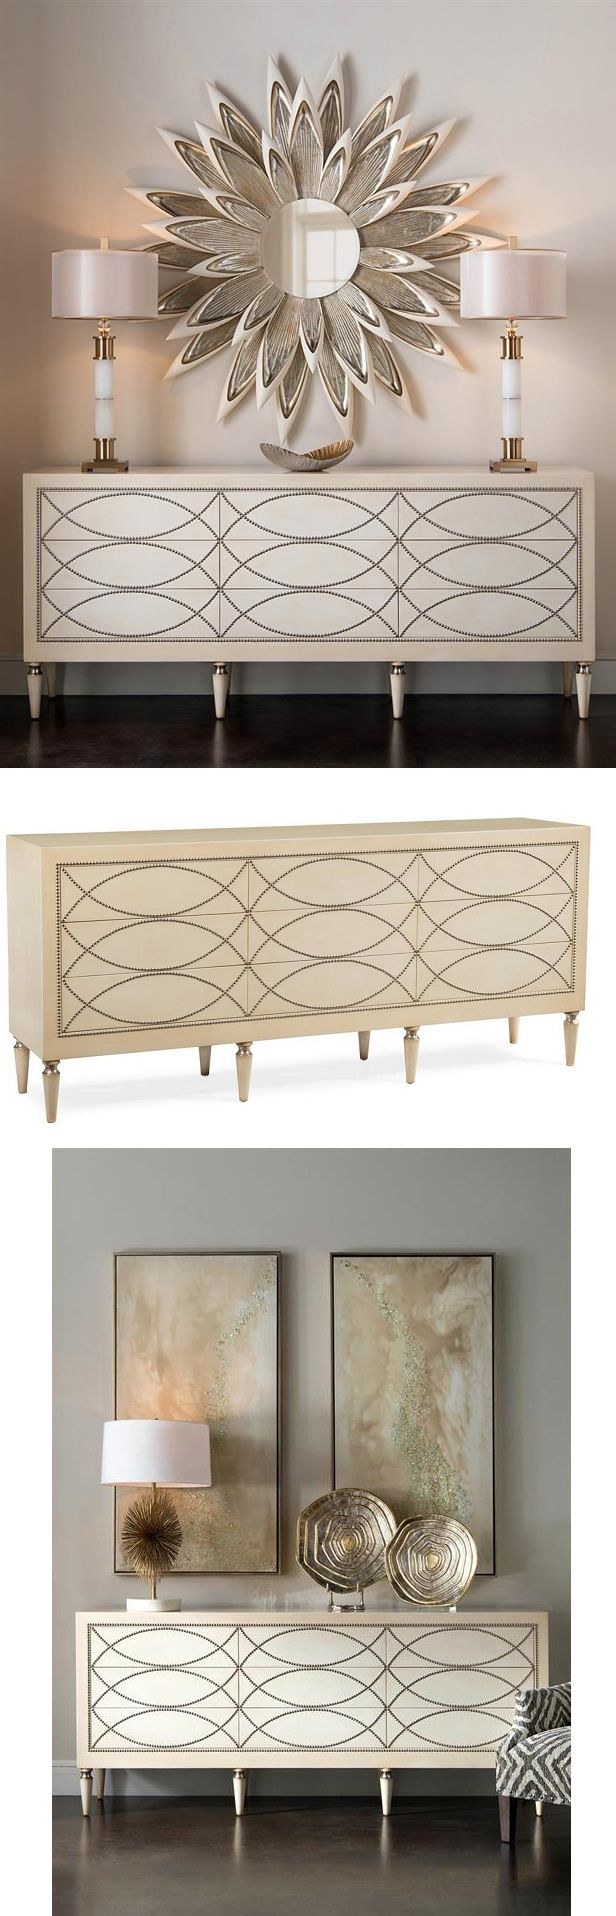 Best 25+ Dining room sideboard ideas on Pinterest | Dining room ...